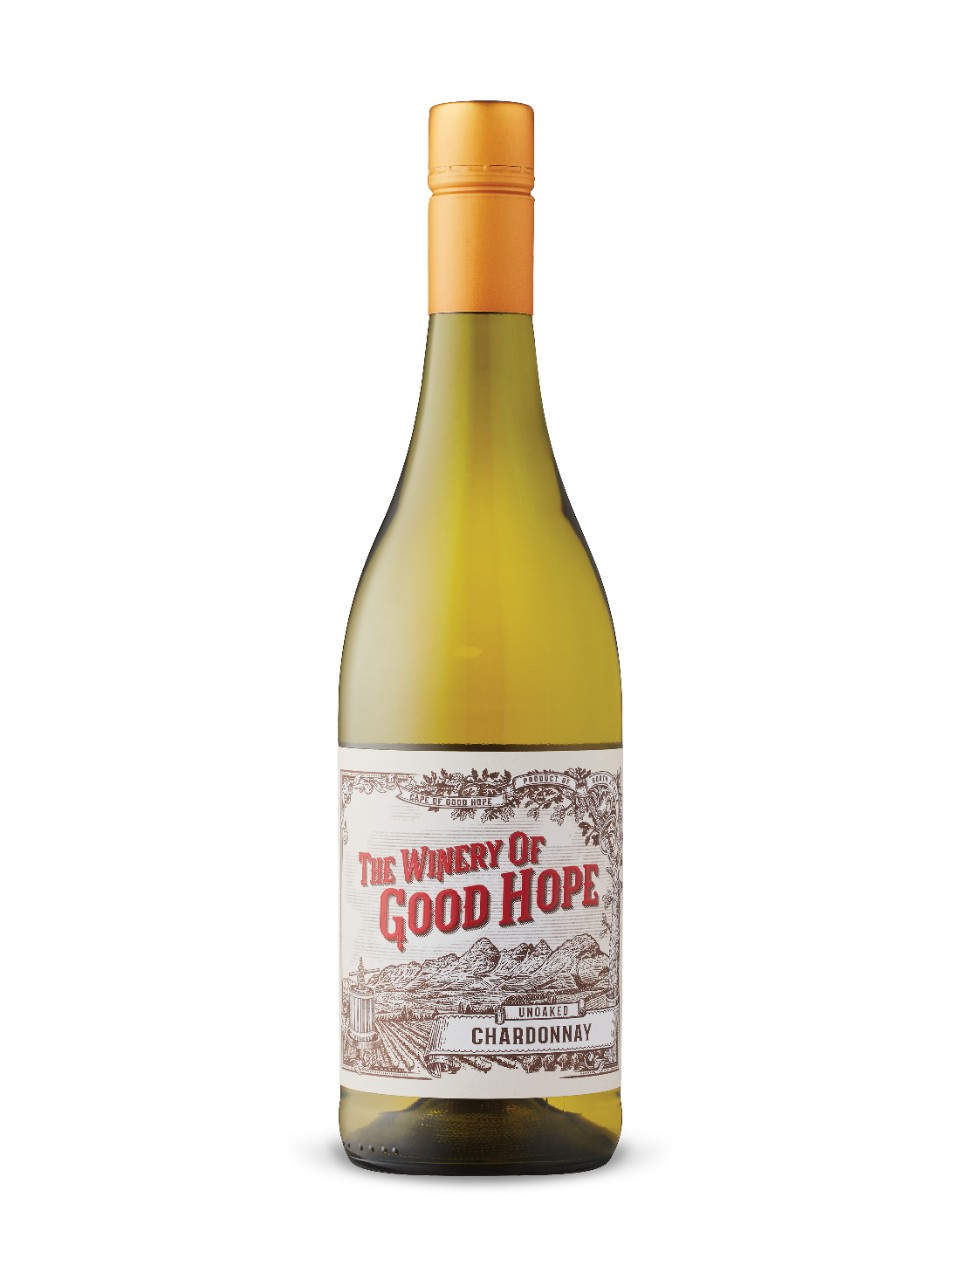 The Winery of Good Hope Unoaked Chardonnay 2019 from LCBO